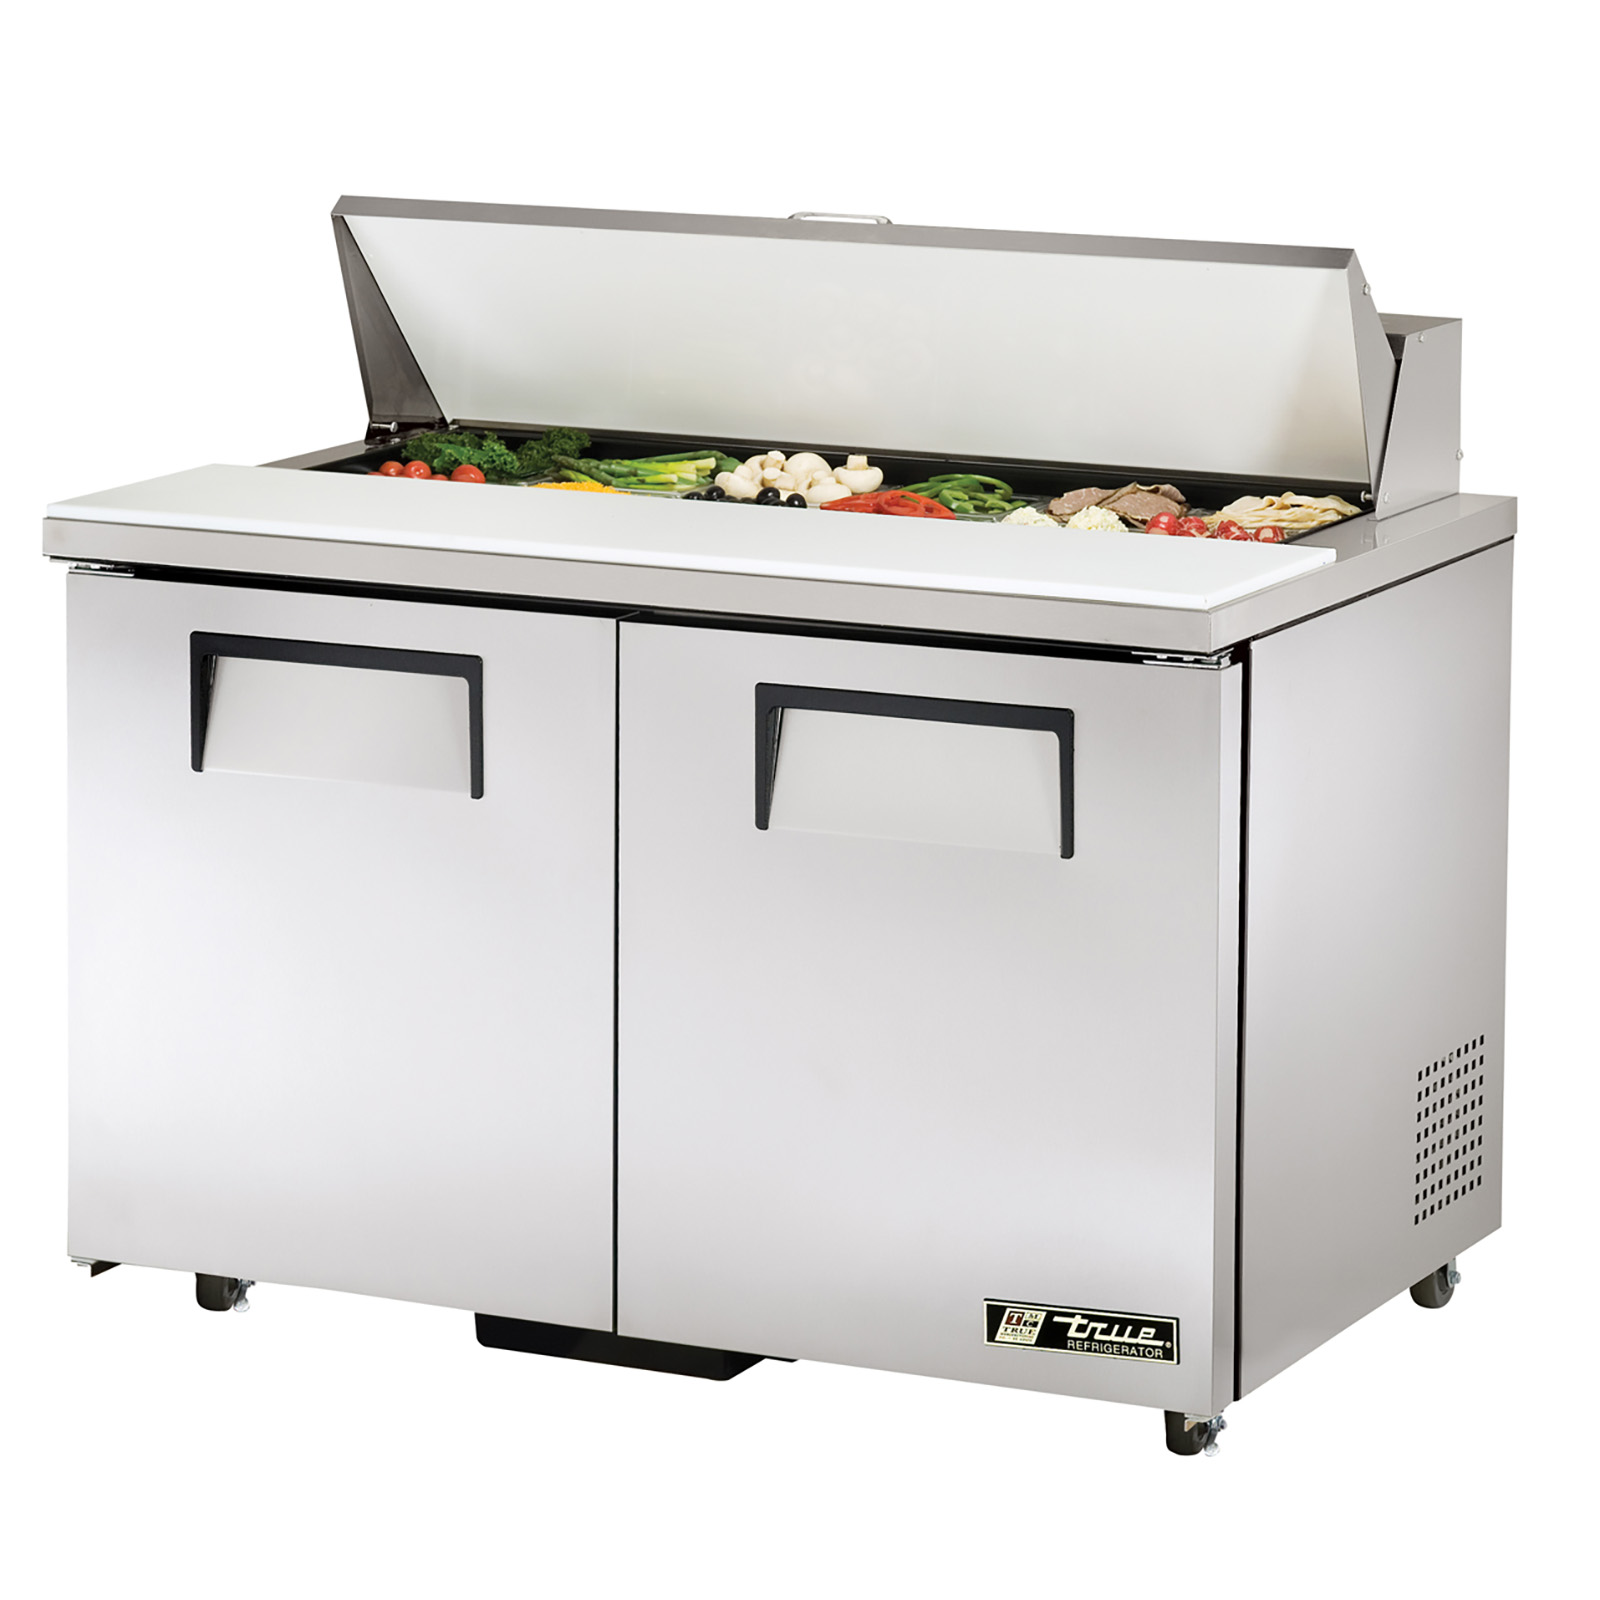 TSSU-48-12-ADA True - ADA Compliant Sandwich/Salad Unit (12) 1/6 size (4